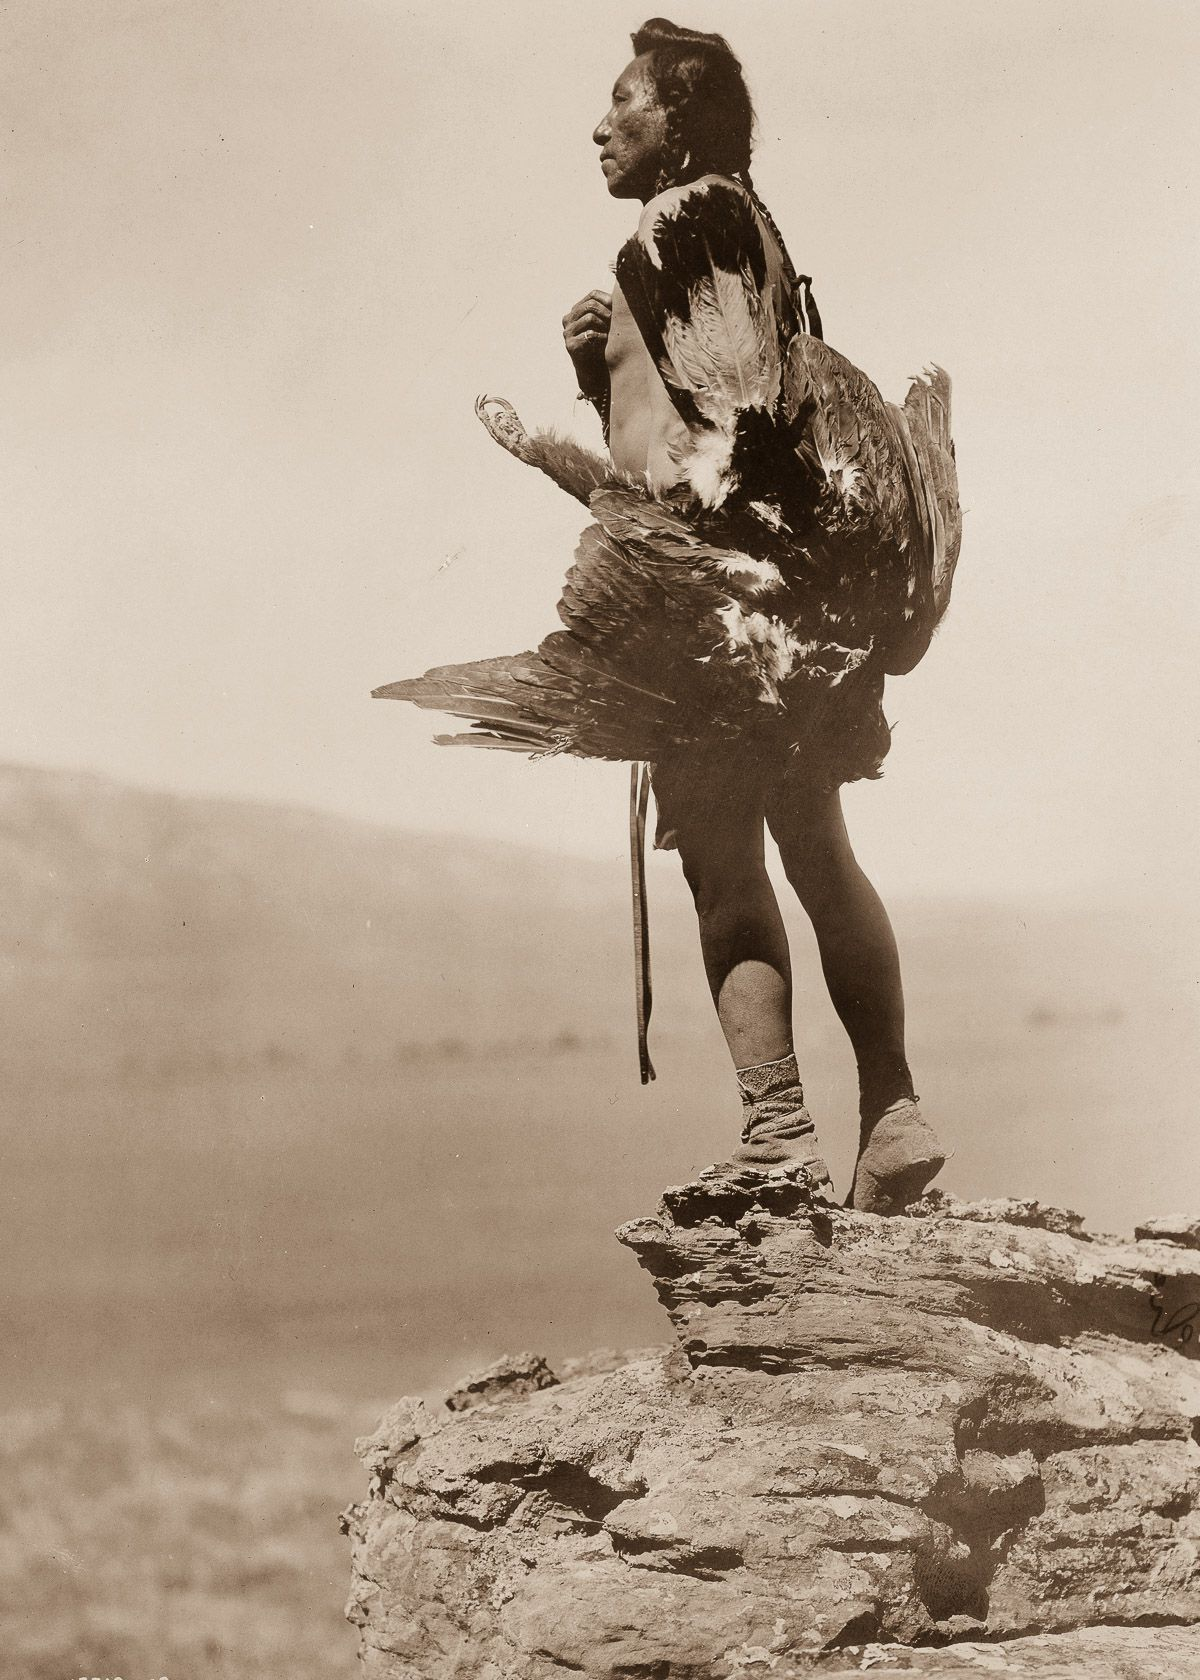 A Hidatsa man with a captured eagle,  1908.  ©EDWARD S. CURTIS/LIBRARY OF CONGRESS